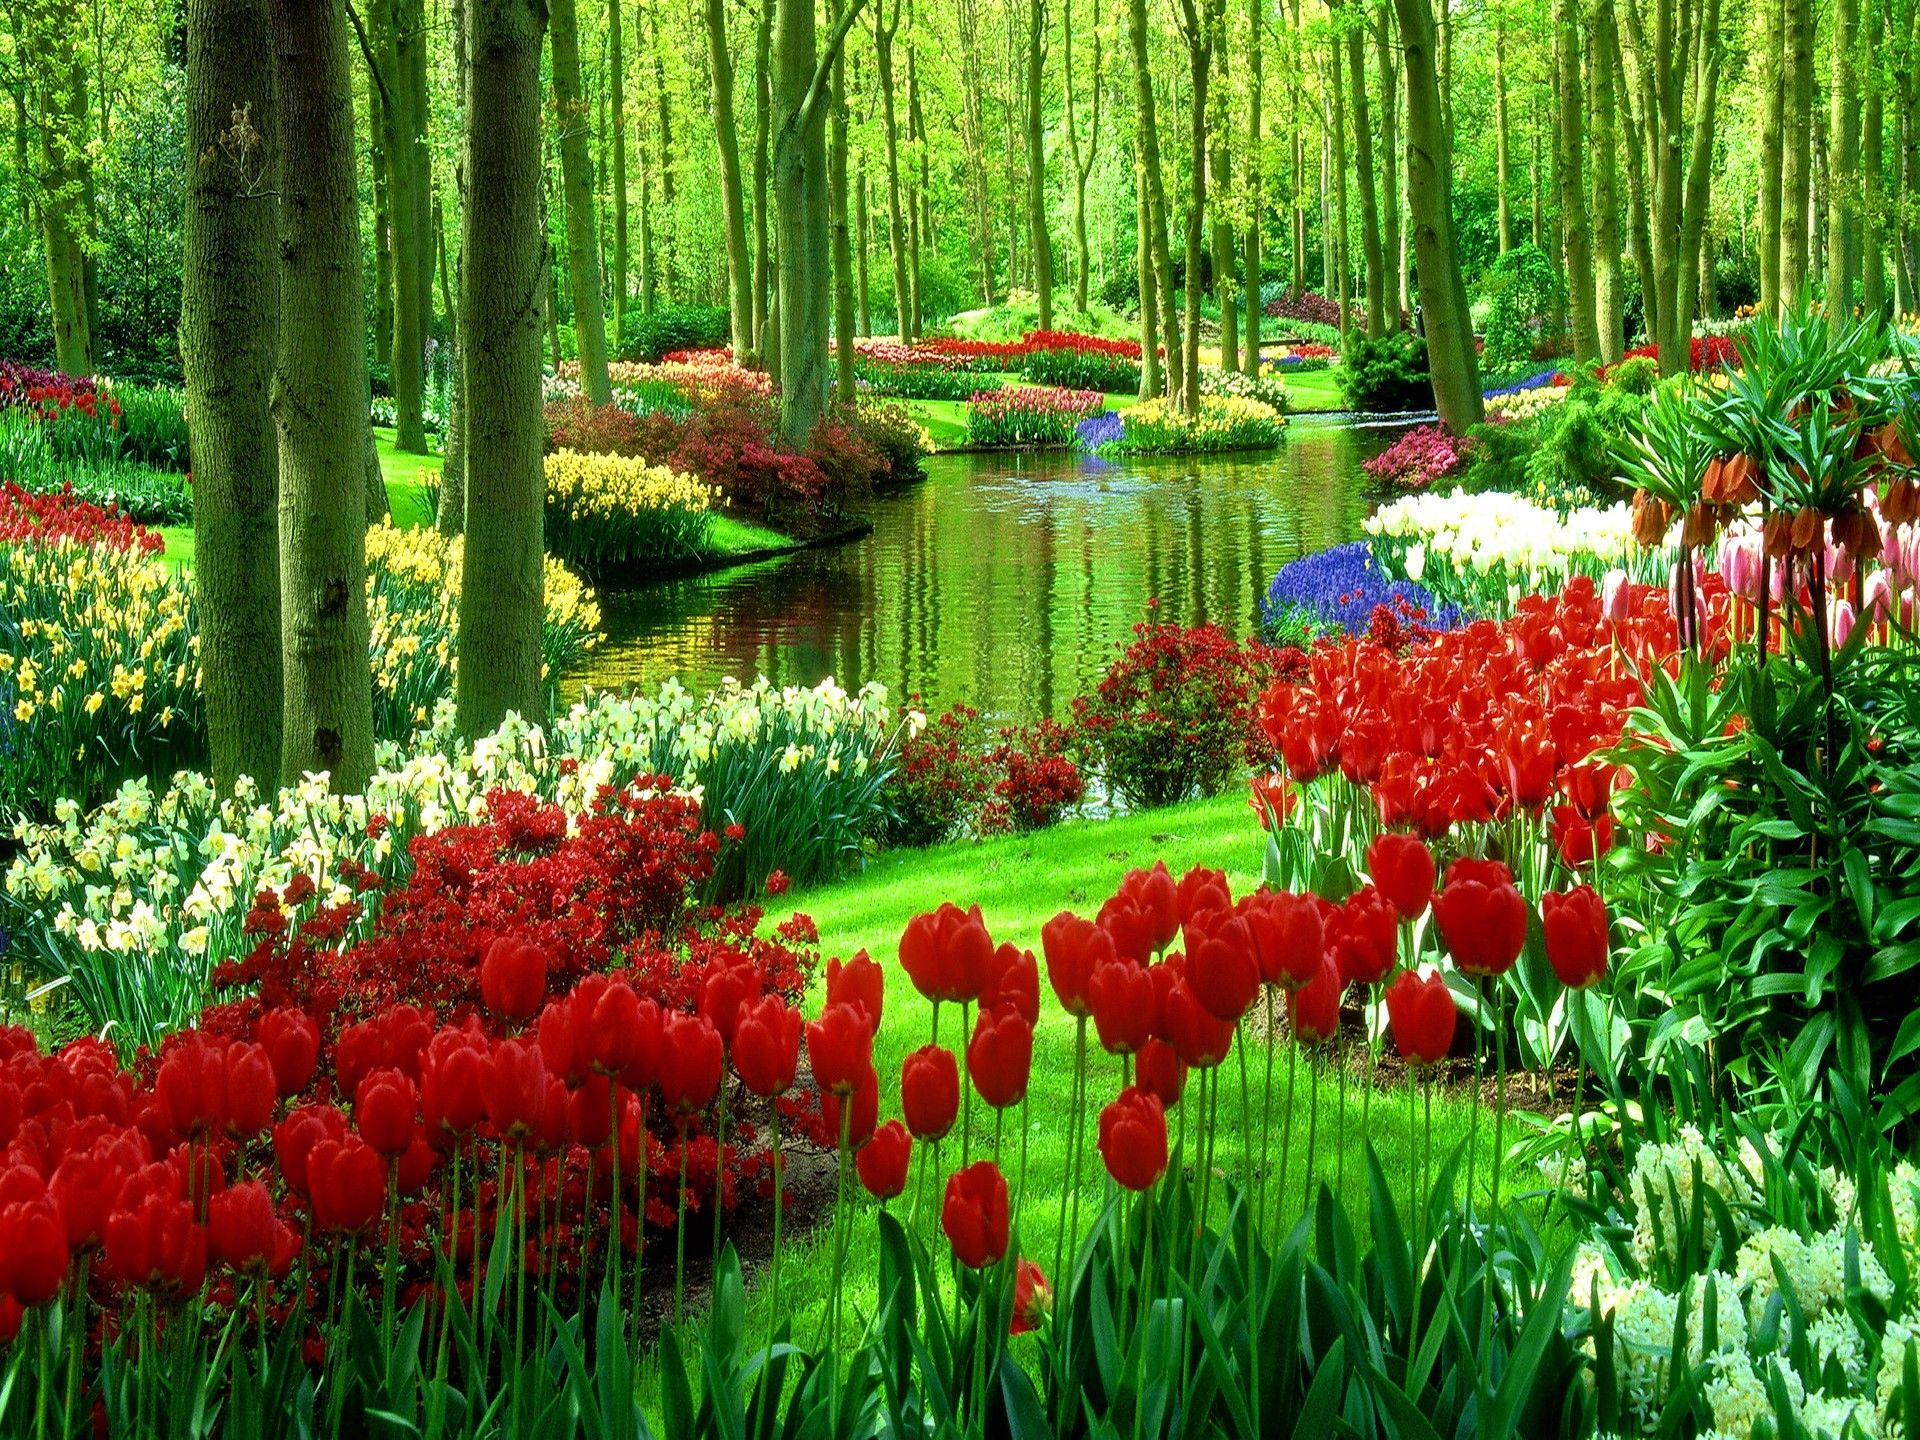 Summer Beautiful Grass Tulips Garden Nature Lovely Pretty Water Greenery Nice Trees Flowe Beautiful Flowers Garden Beautiful Gardens Beautiful Nature Wallpaper